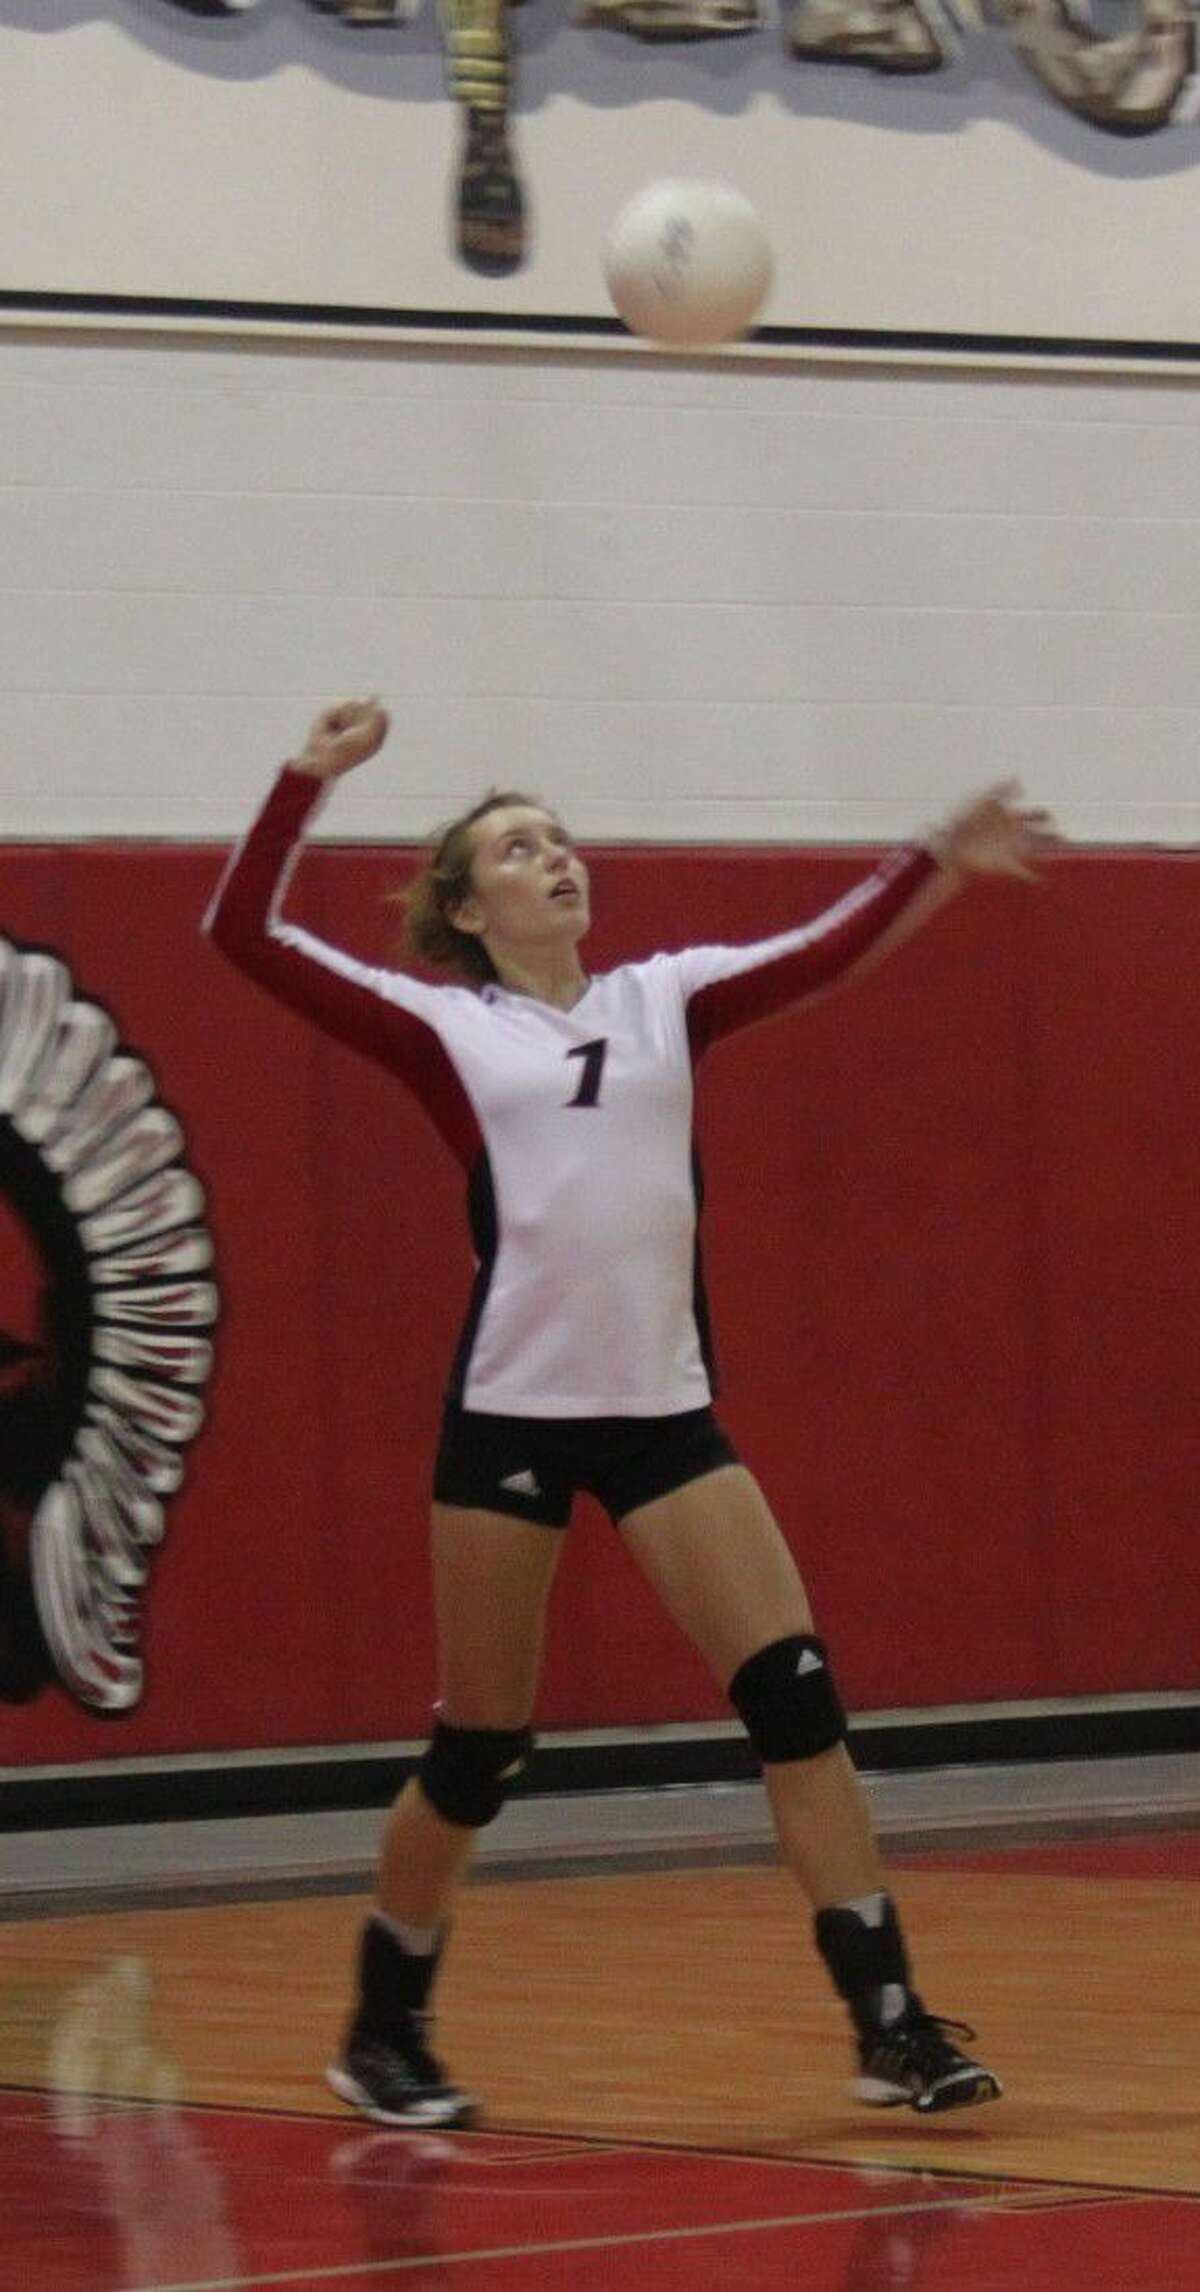 Sarah Heflin (7) of the Lady Trojans prepares to serve the ball.